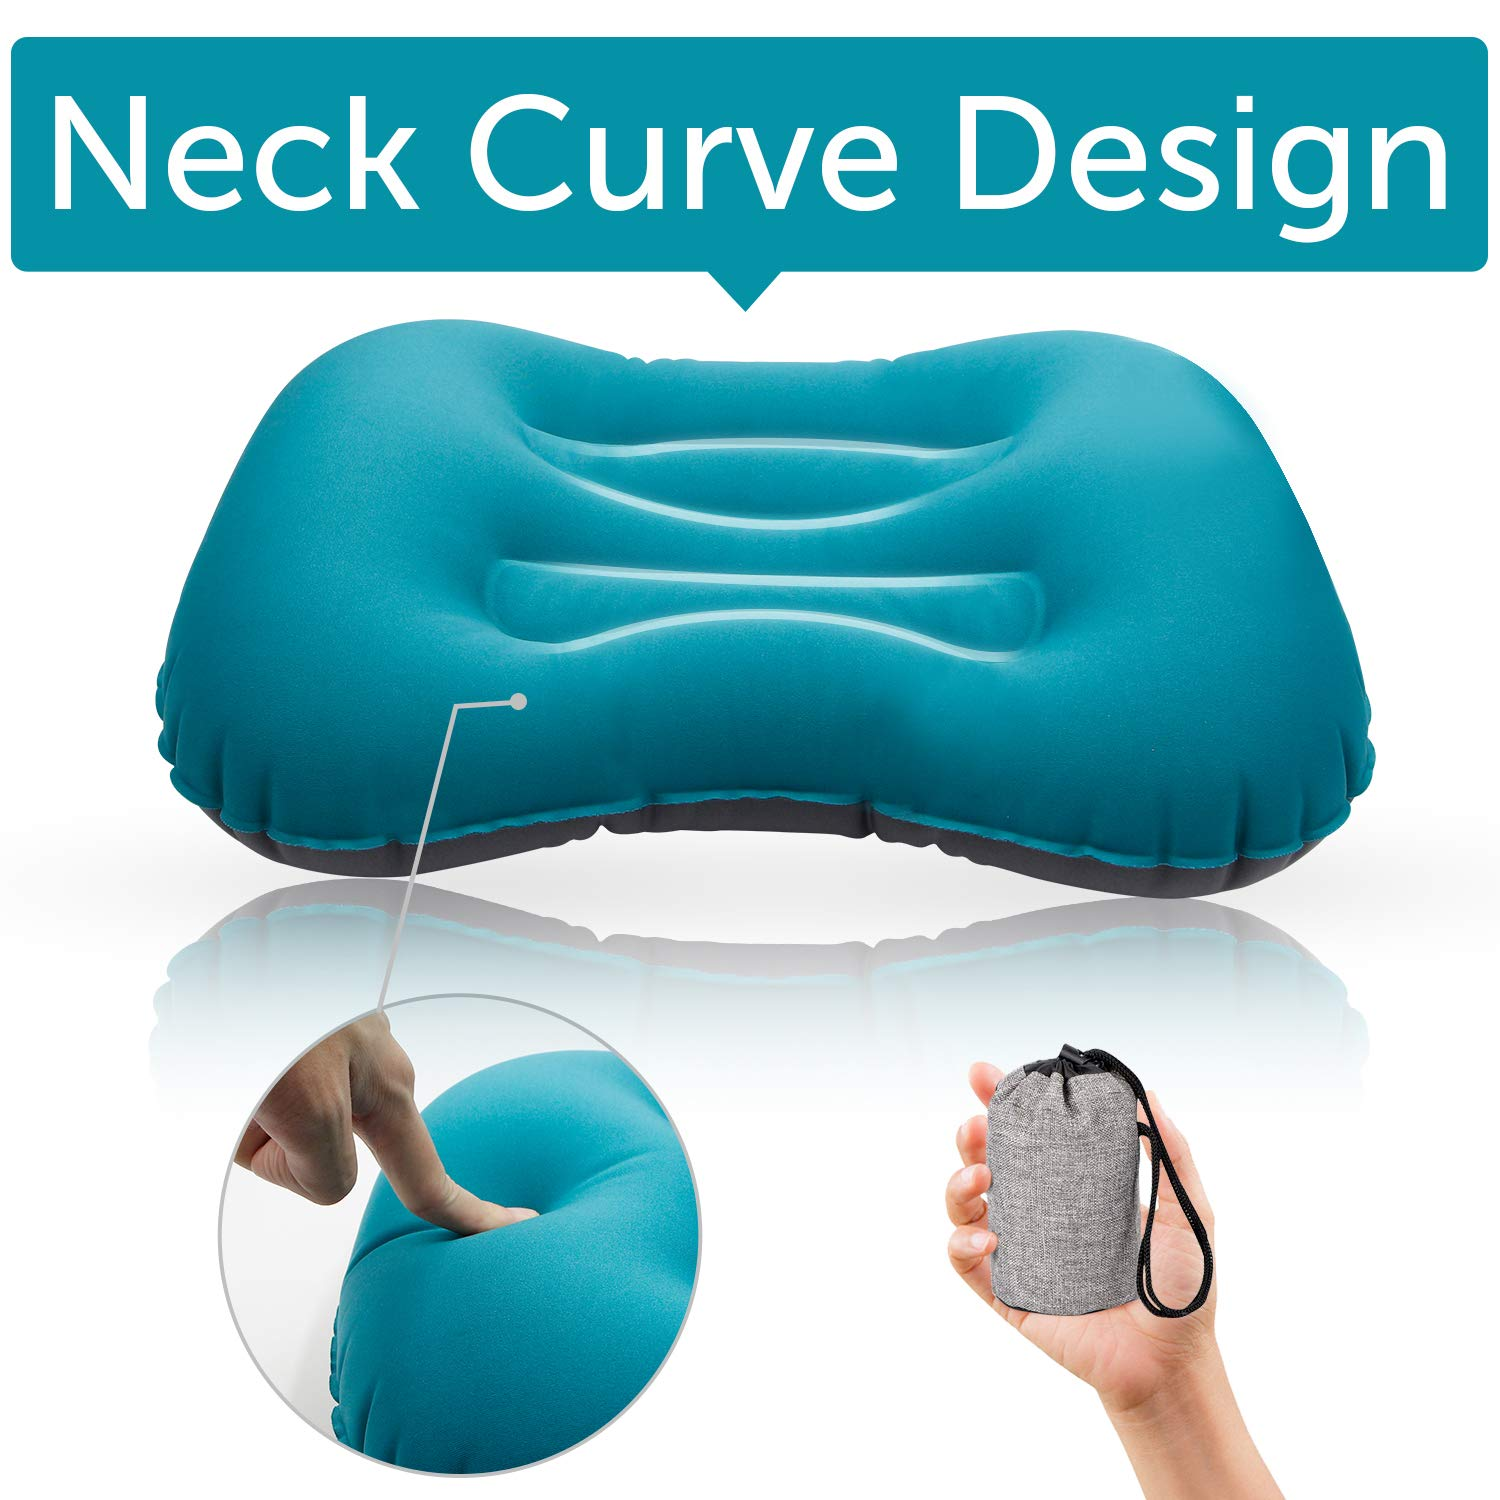 Camping Pillow,Inflatable Pillow,Quickly Inflate and Defflate Travel Pillow for Your Neck Lumbar Support Backpacking, Hiking, Airplane Car Beach-Indoor & Outdoor(Air Blue)